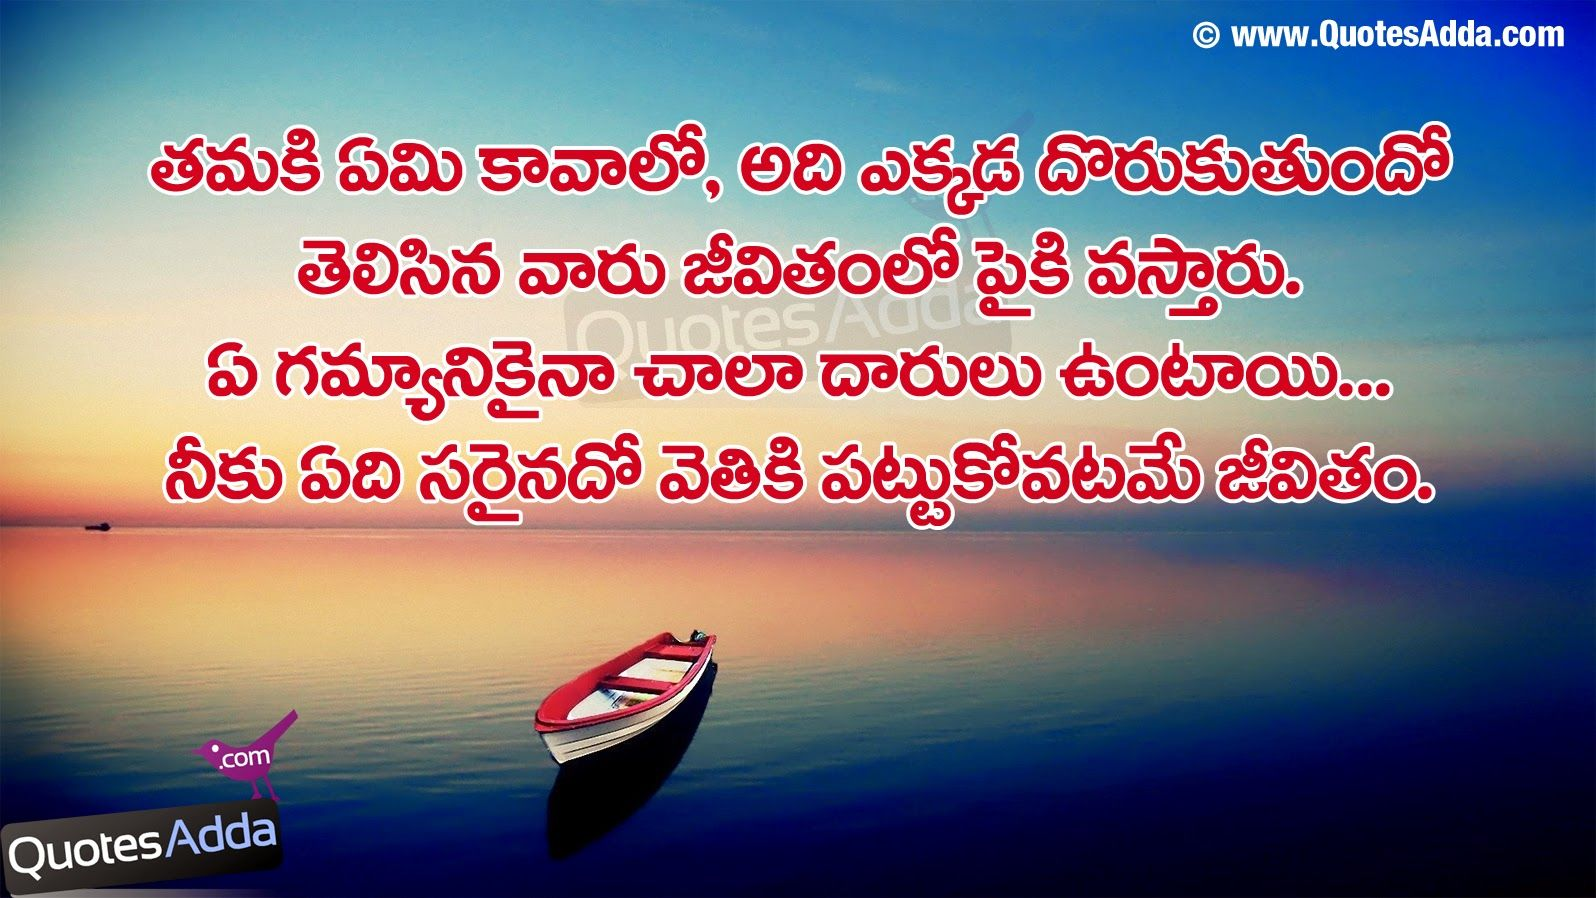 life inspirational quotes in english wallpaper Latest New